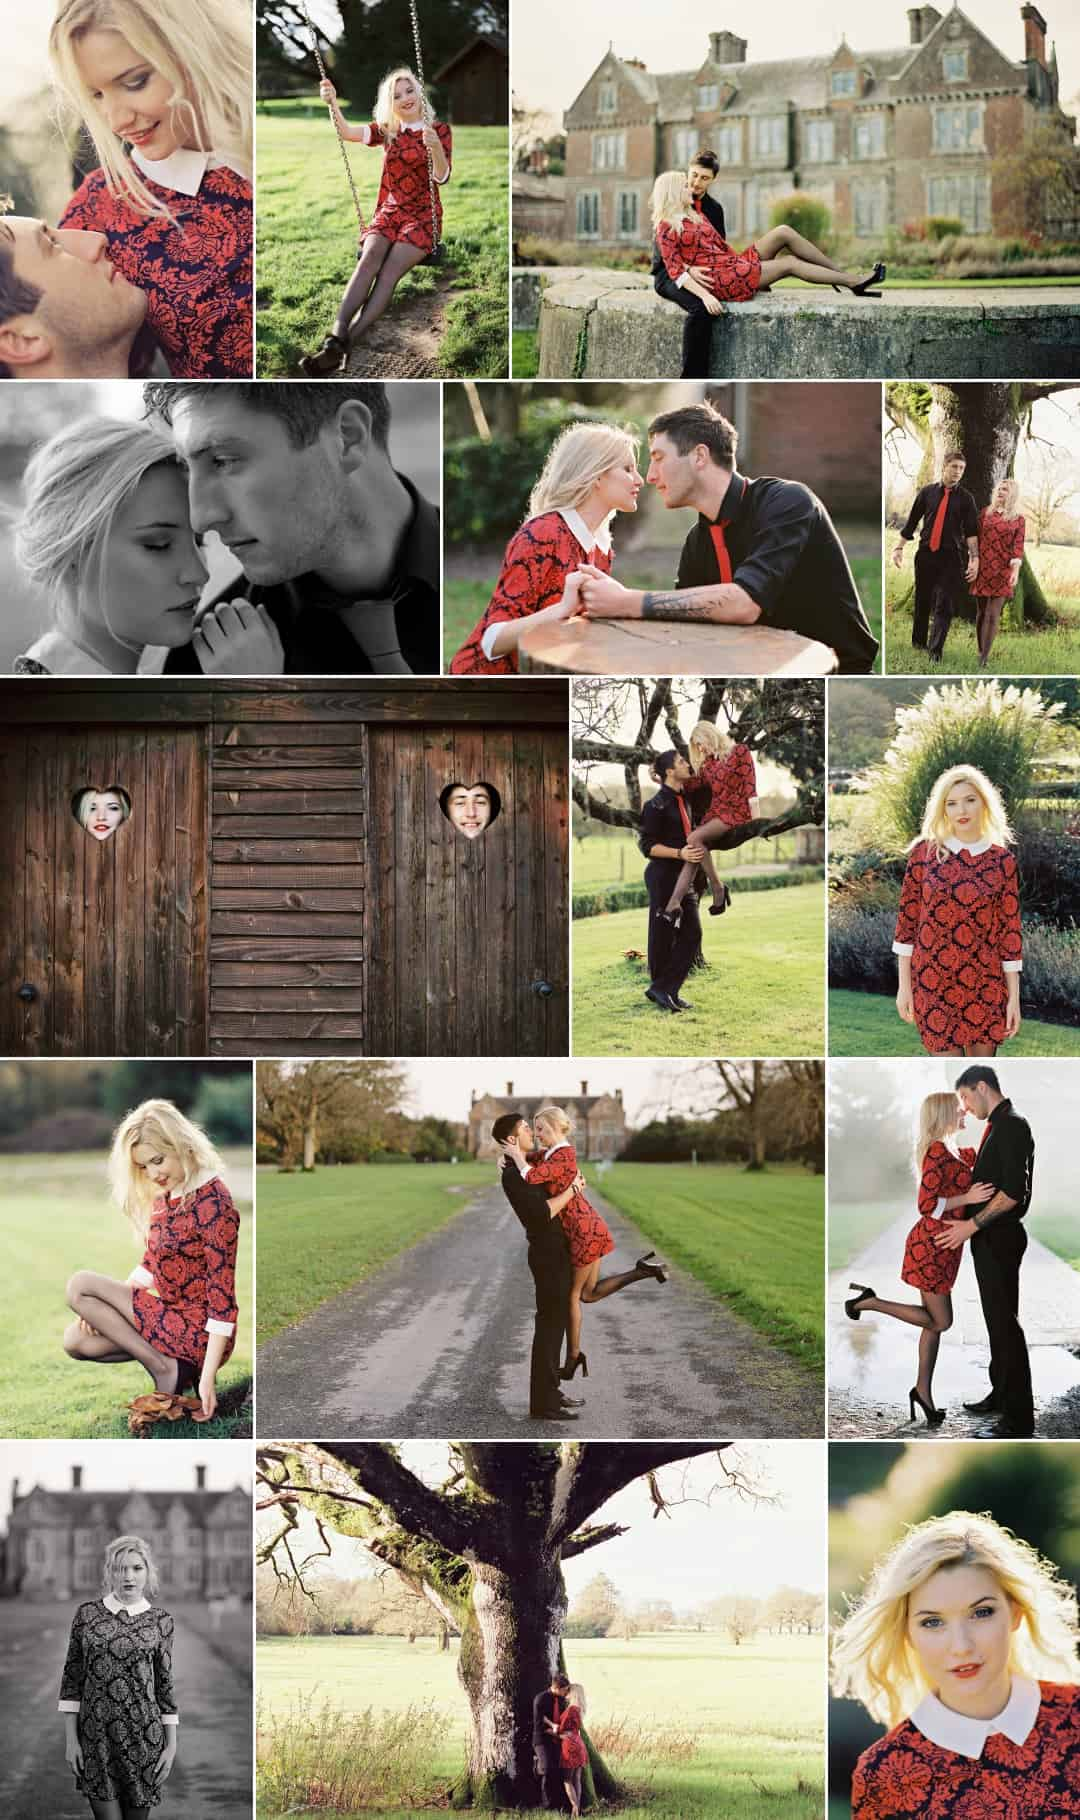 photos of a couple on their engagement photoshoot in the park on a sunny day